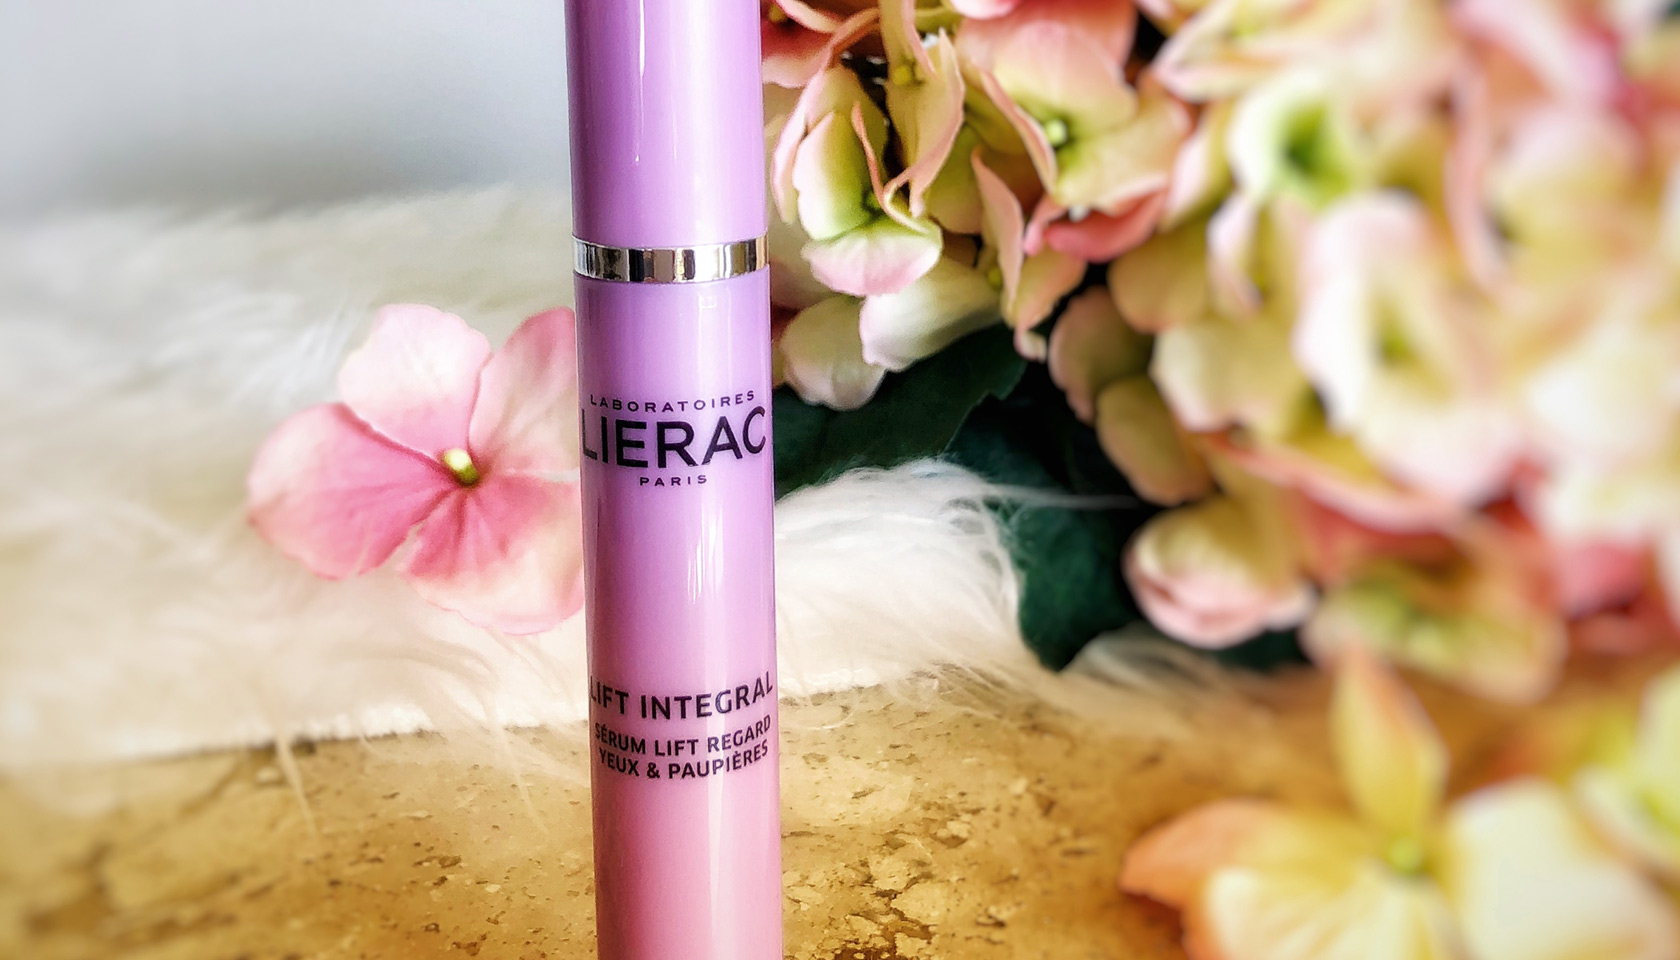 Laboratoires LIERAC Paris Lift Integral Eye Lift Serum Eyes and Lids